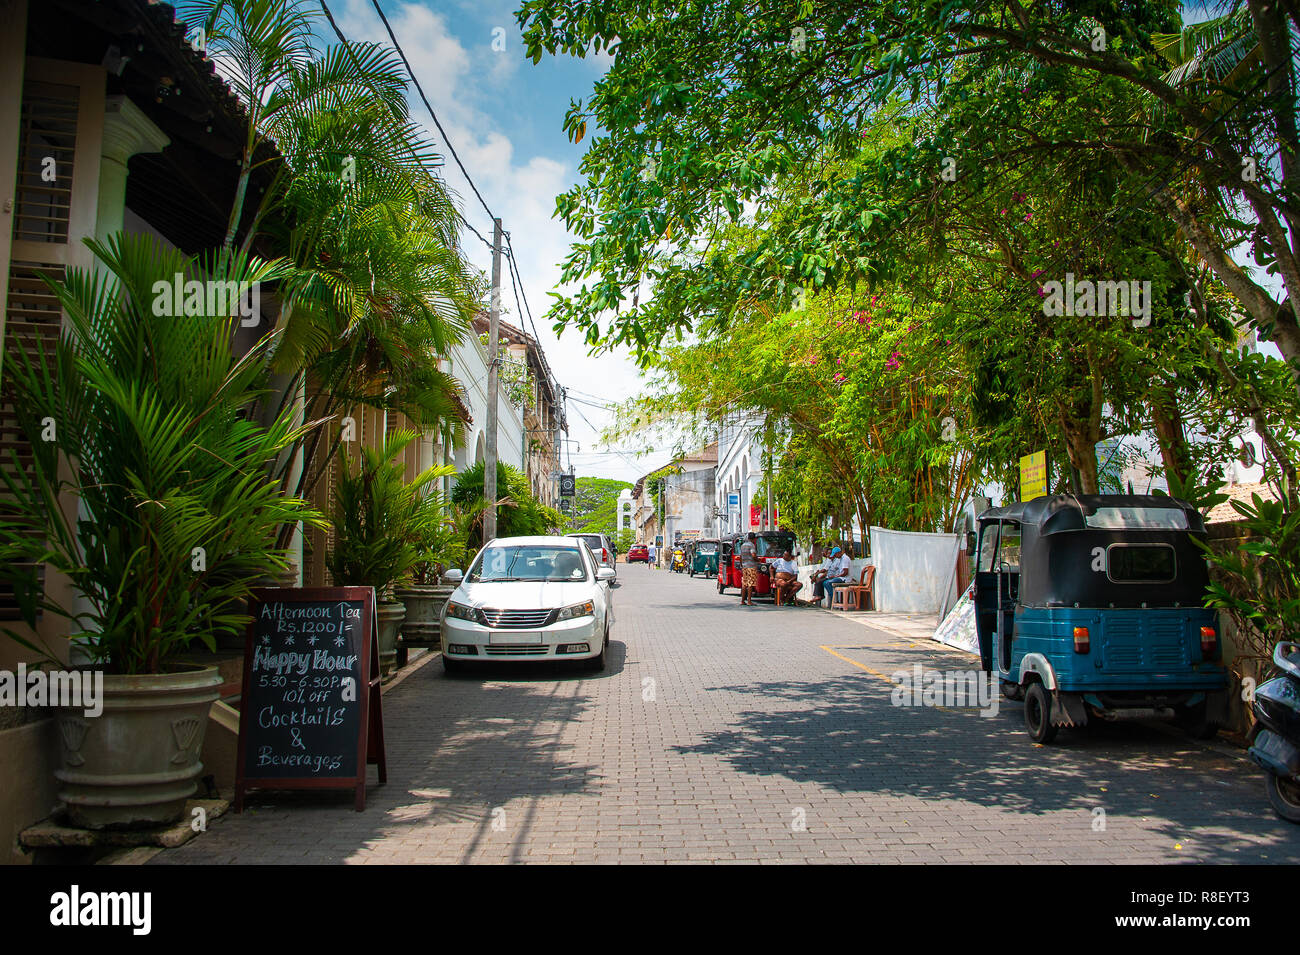 Streetscape in the old colonial dutch quarter, Galle Fort   Sunny scene with people relaxing, parked vehicles, lush greenery with blue cloudy sky. - Stock Image